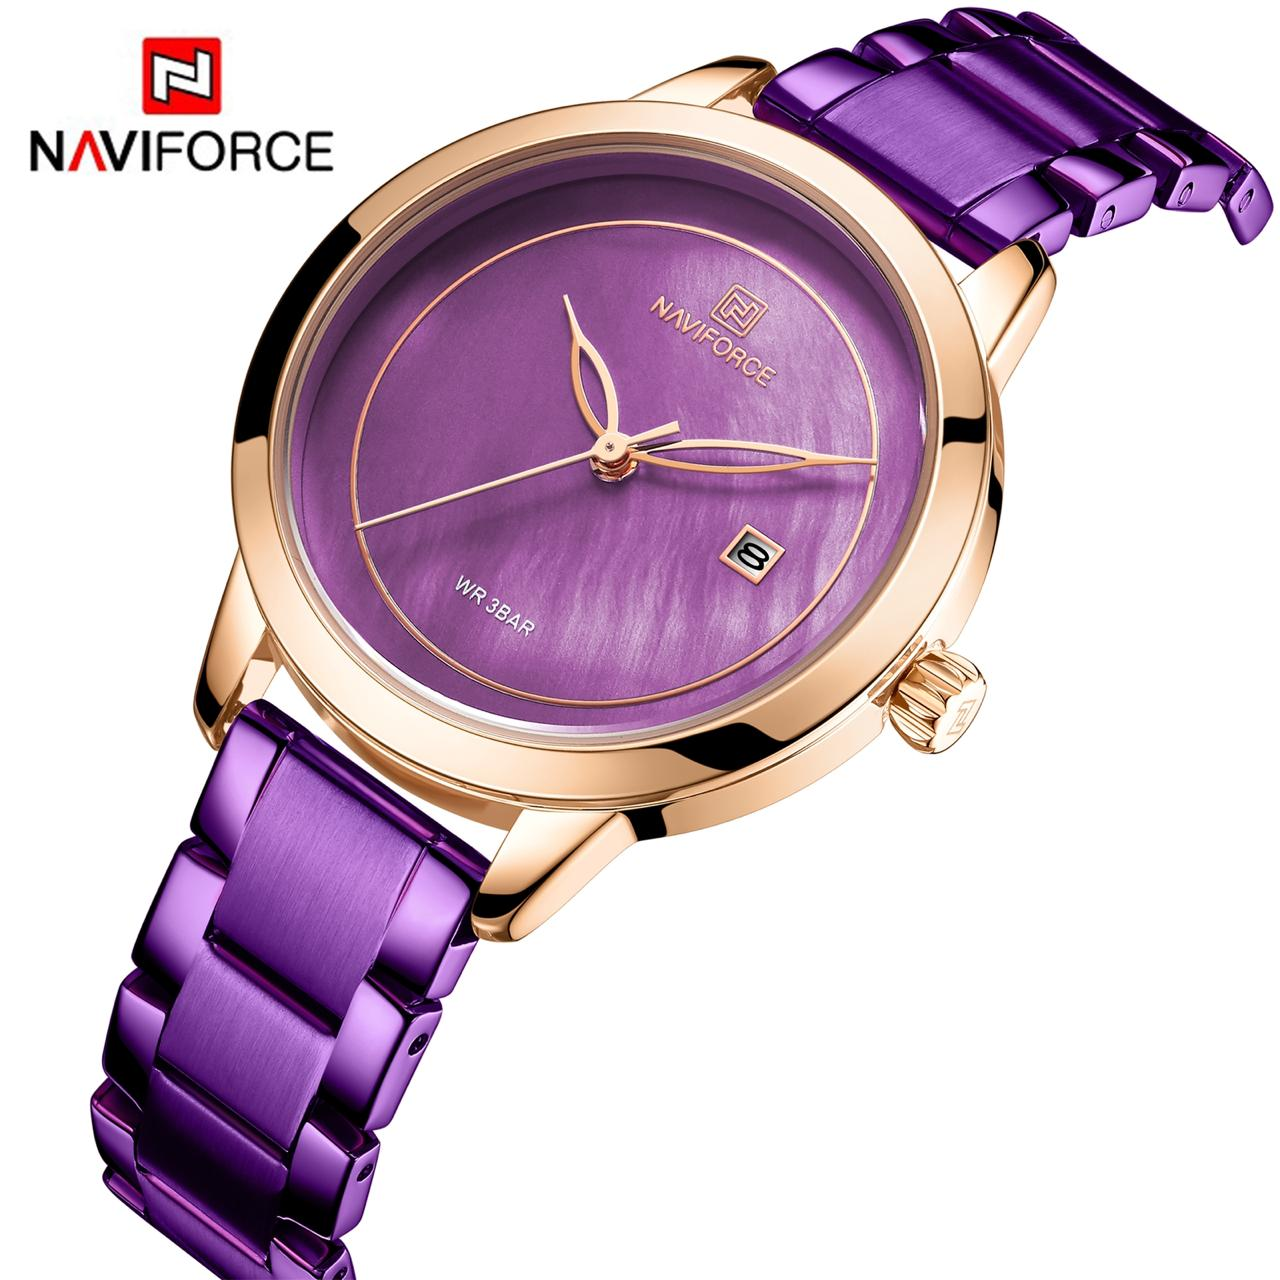 Naviforce NF 5008 Women's Analog Watch With Date 30m Waterproof Stainless Steel Party Wear Casual Fashion